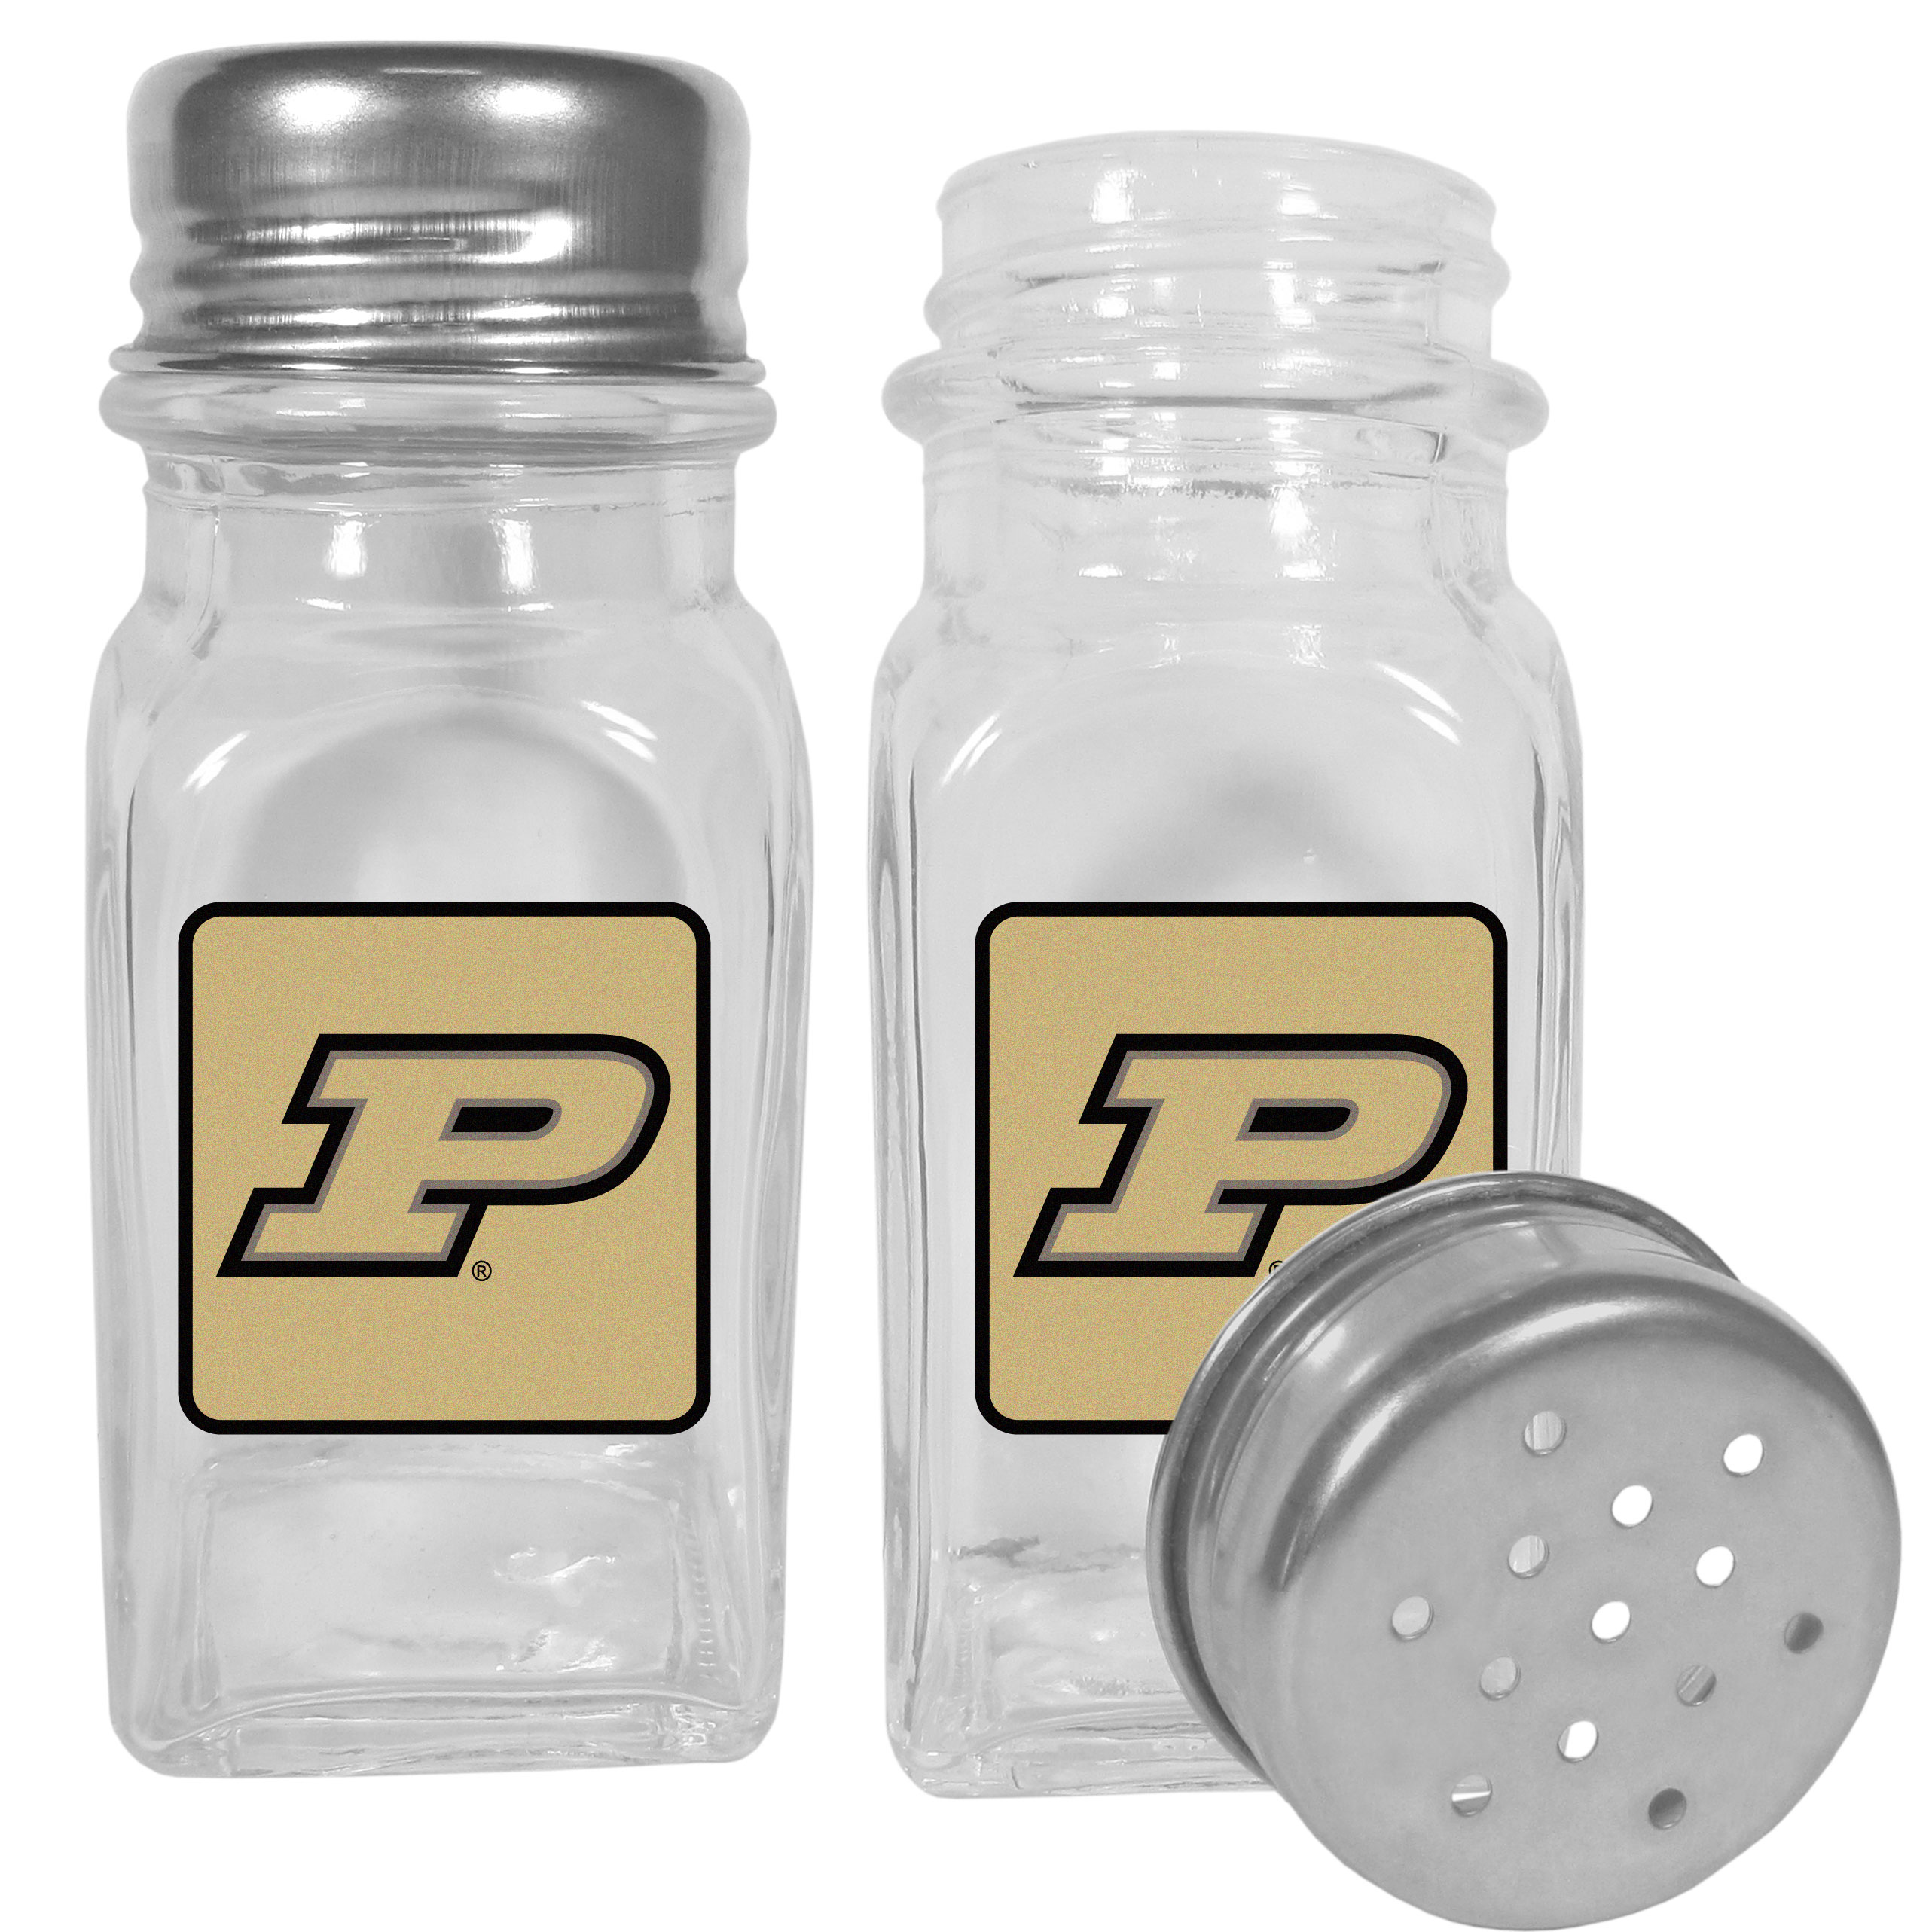 Purdue Boilermakers Graphics Salt & Pepper Shaker - No tailgate party is complete without your Purdue Boilermakers salt & pepper shakers featuring bright team logos. The diner replica salt and pepper shakers are glass with screw top lids. These team shakers are a great grill accessory whether you are barbecuing on the patio, picnicing or having a game day party.